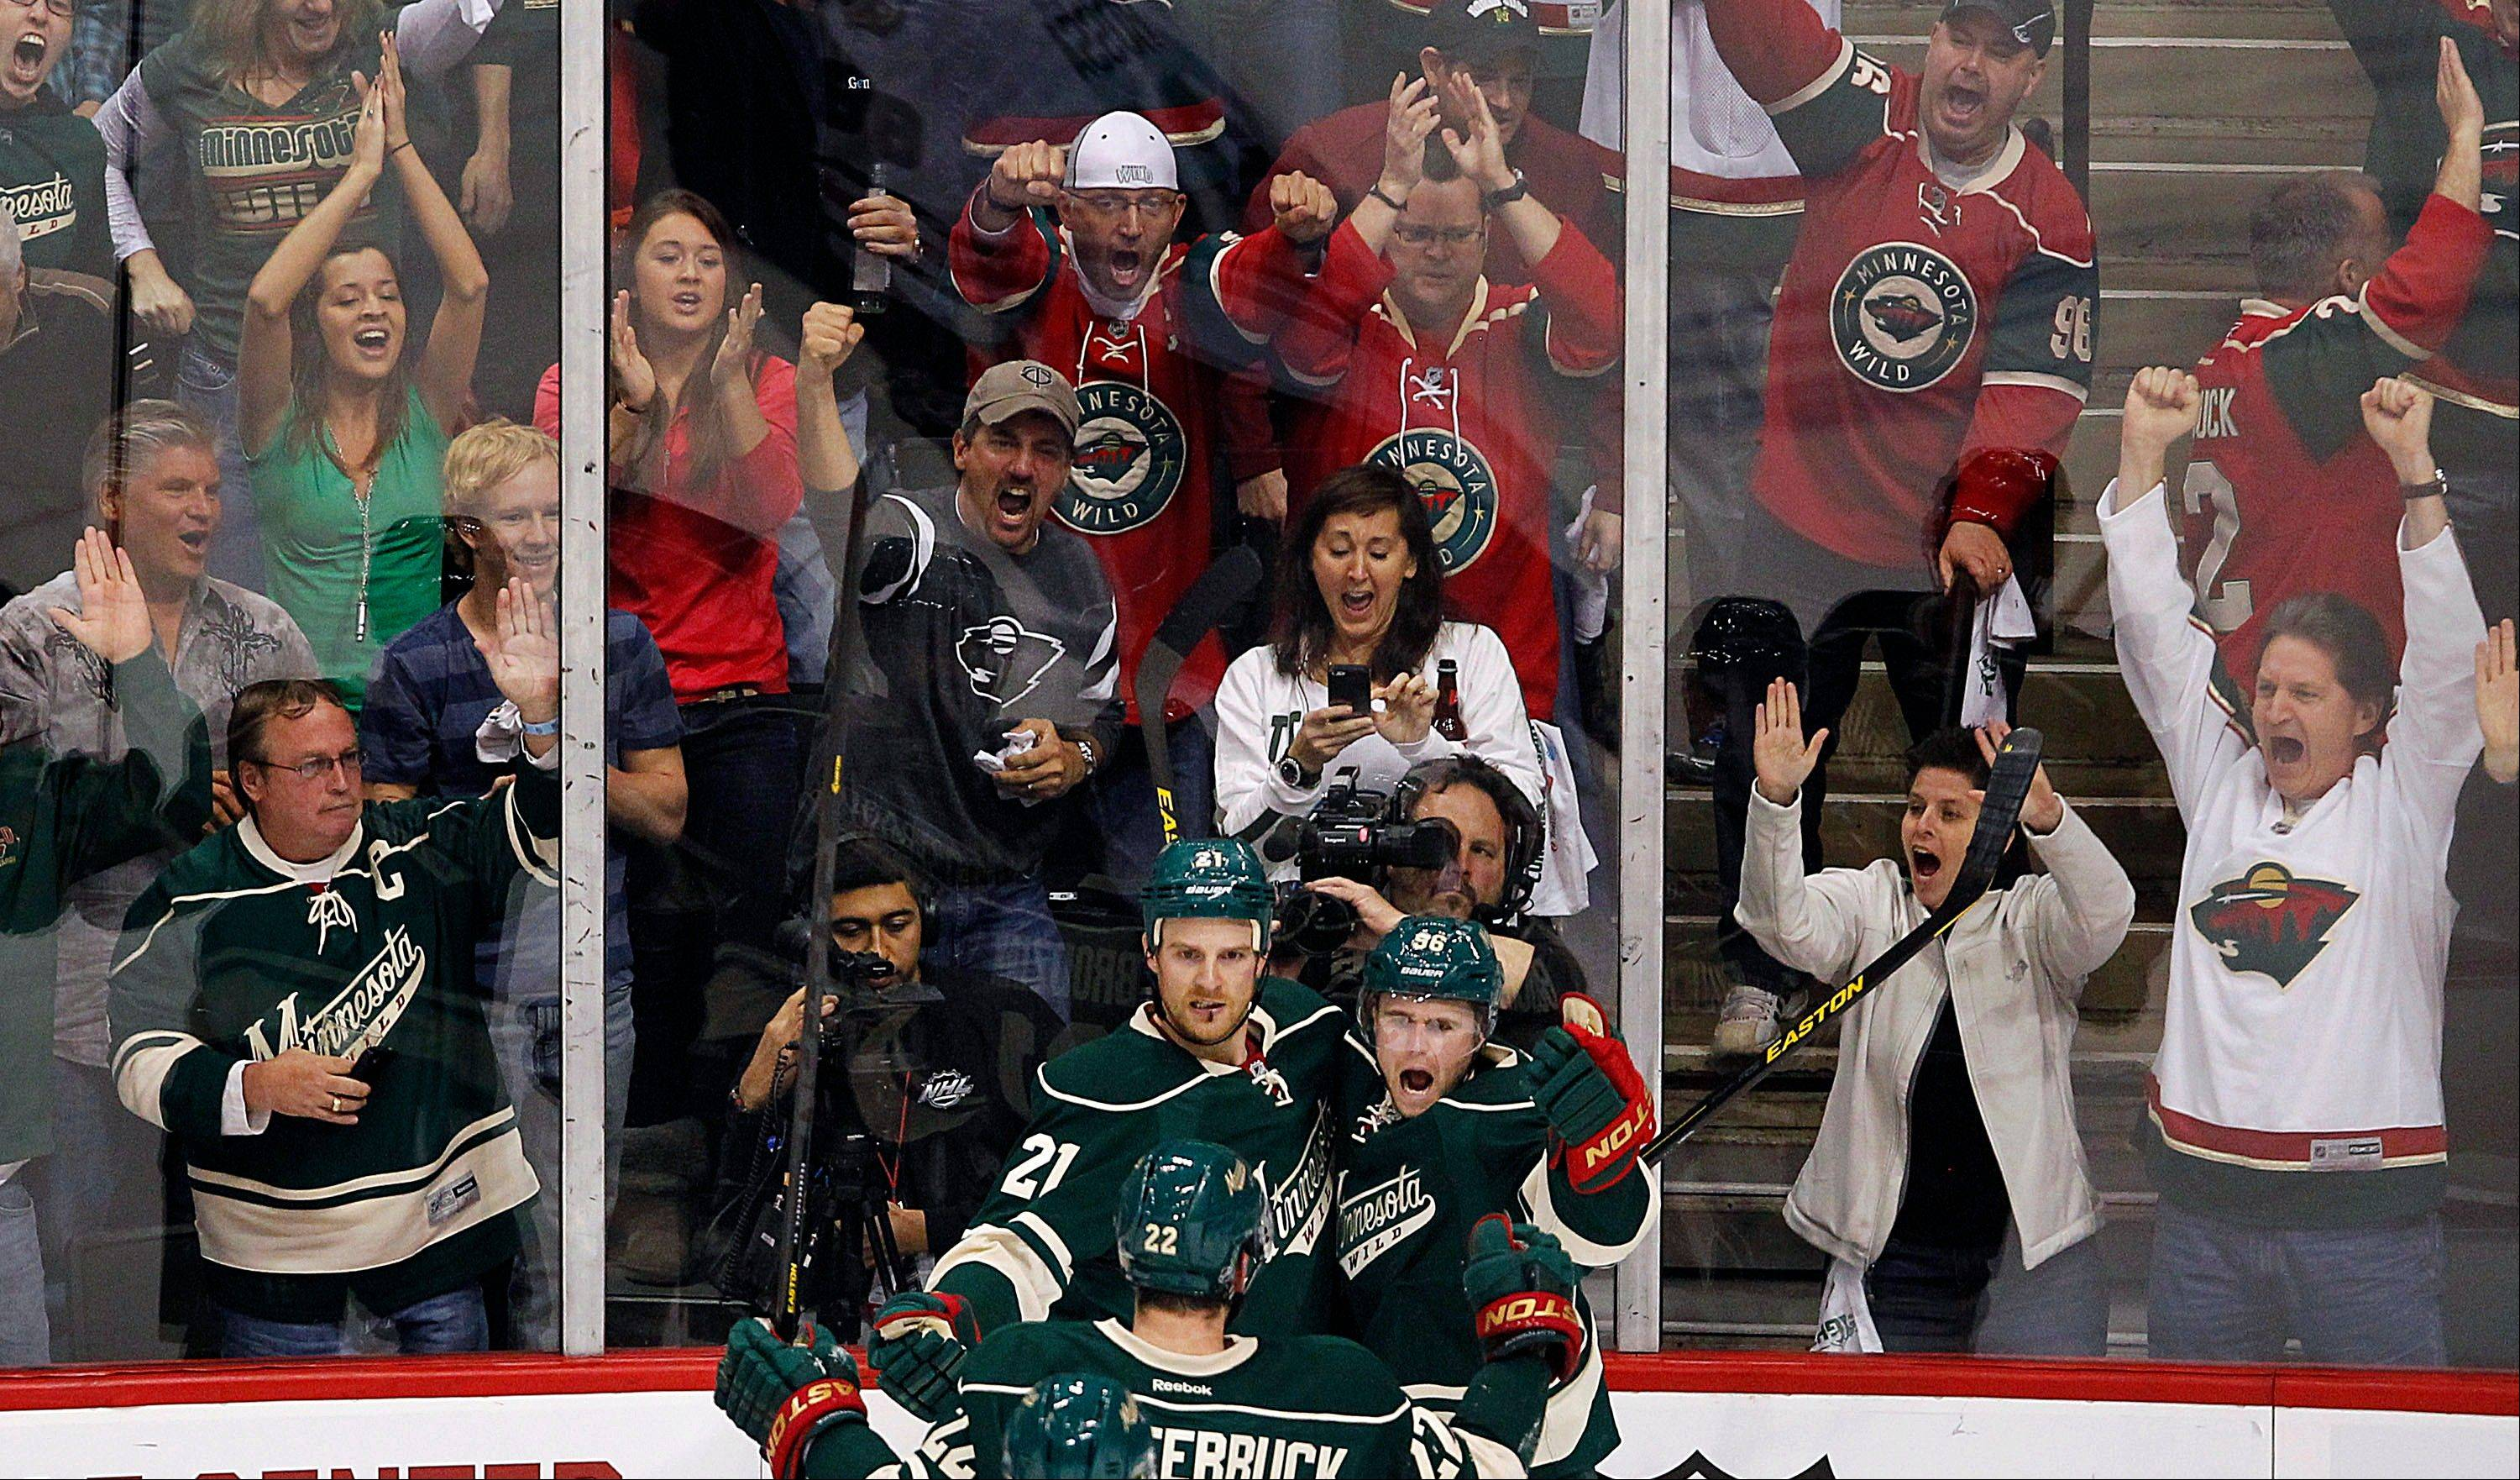 Minnesota Wild's Pierre-Marc Bouchard and Kyle Brodziak celebrate Bouchard's goal against the Chicago Blackhawks in the first period. The Wild defeated the Blackhawks 3-2 in overtime.